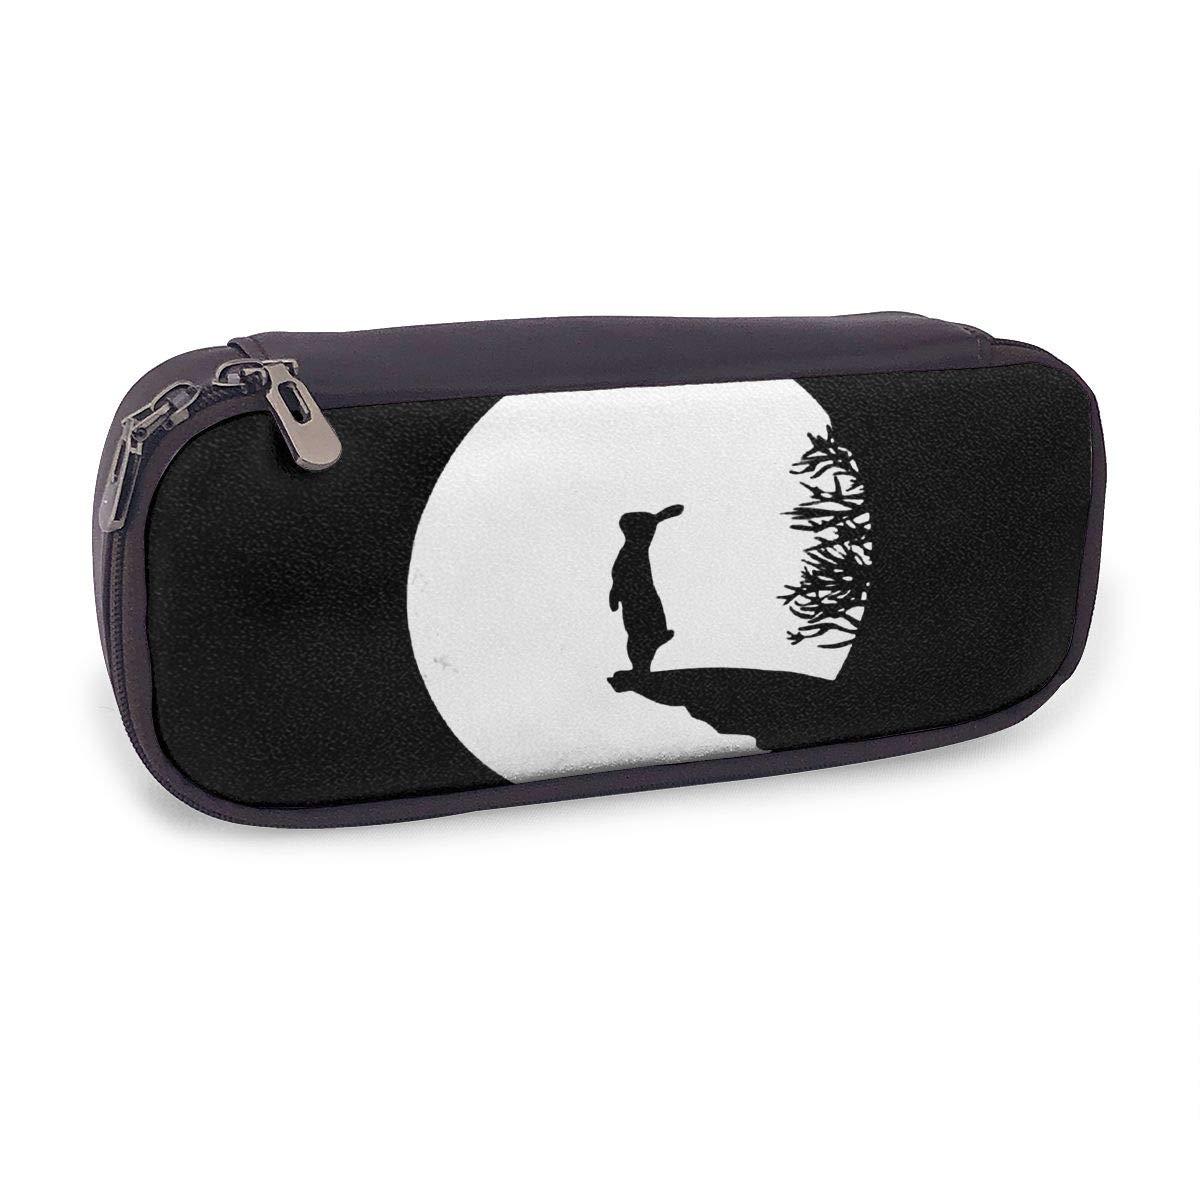 Pencil Case Moony Bunny Rabbit Storage PU Pen Case Waterproof Makeup Pouch Durable Students Stationery with Double Zipper Pen Holder for School and Office